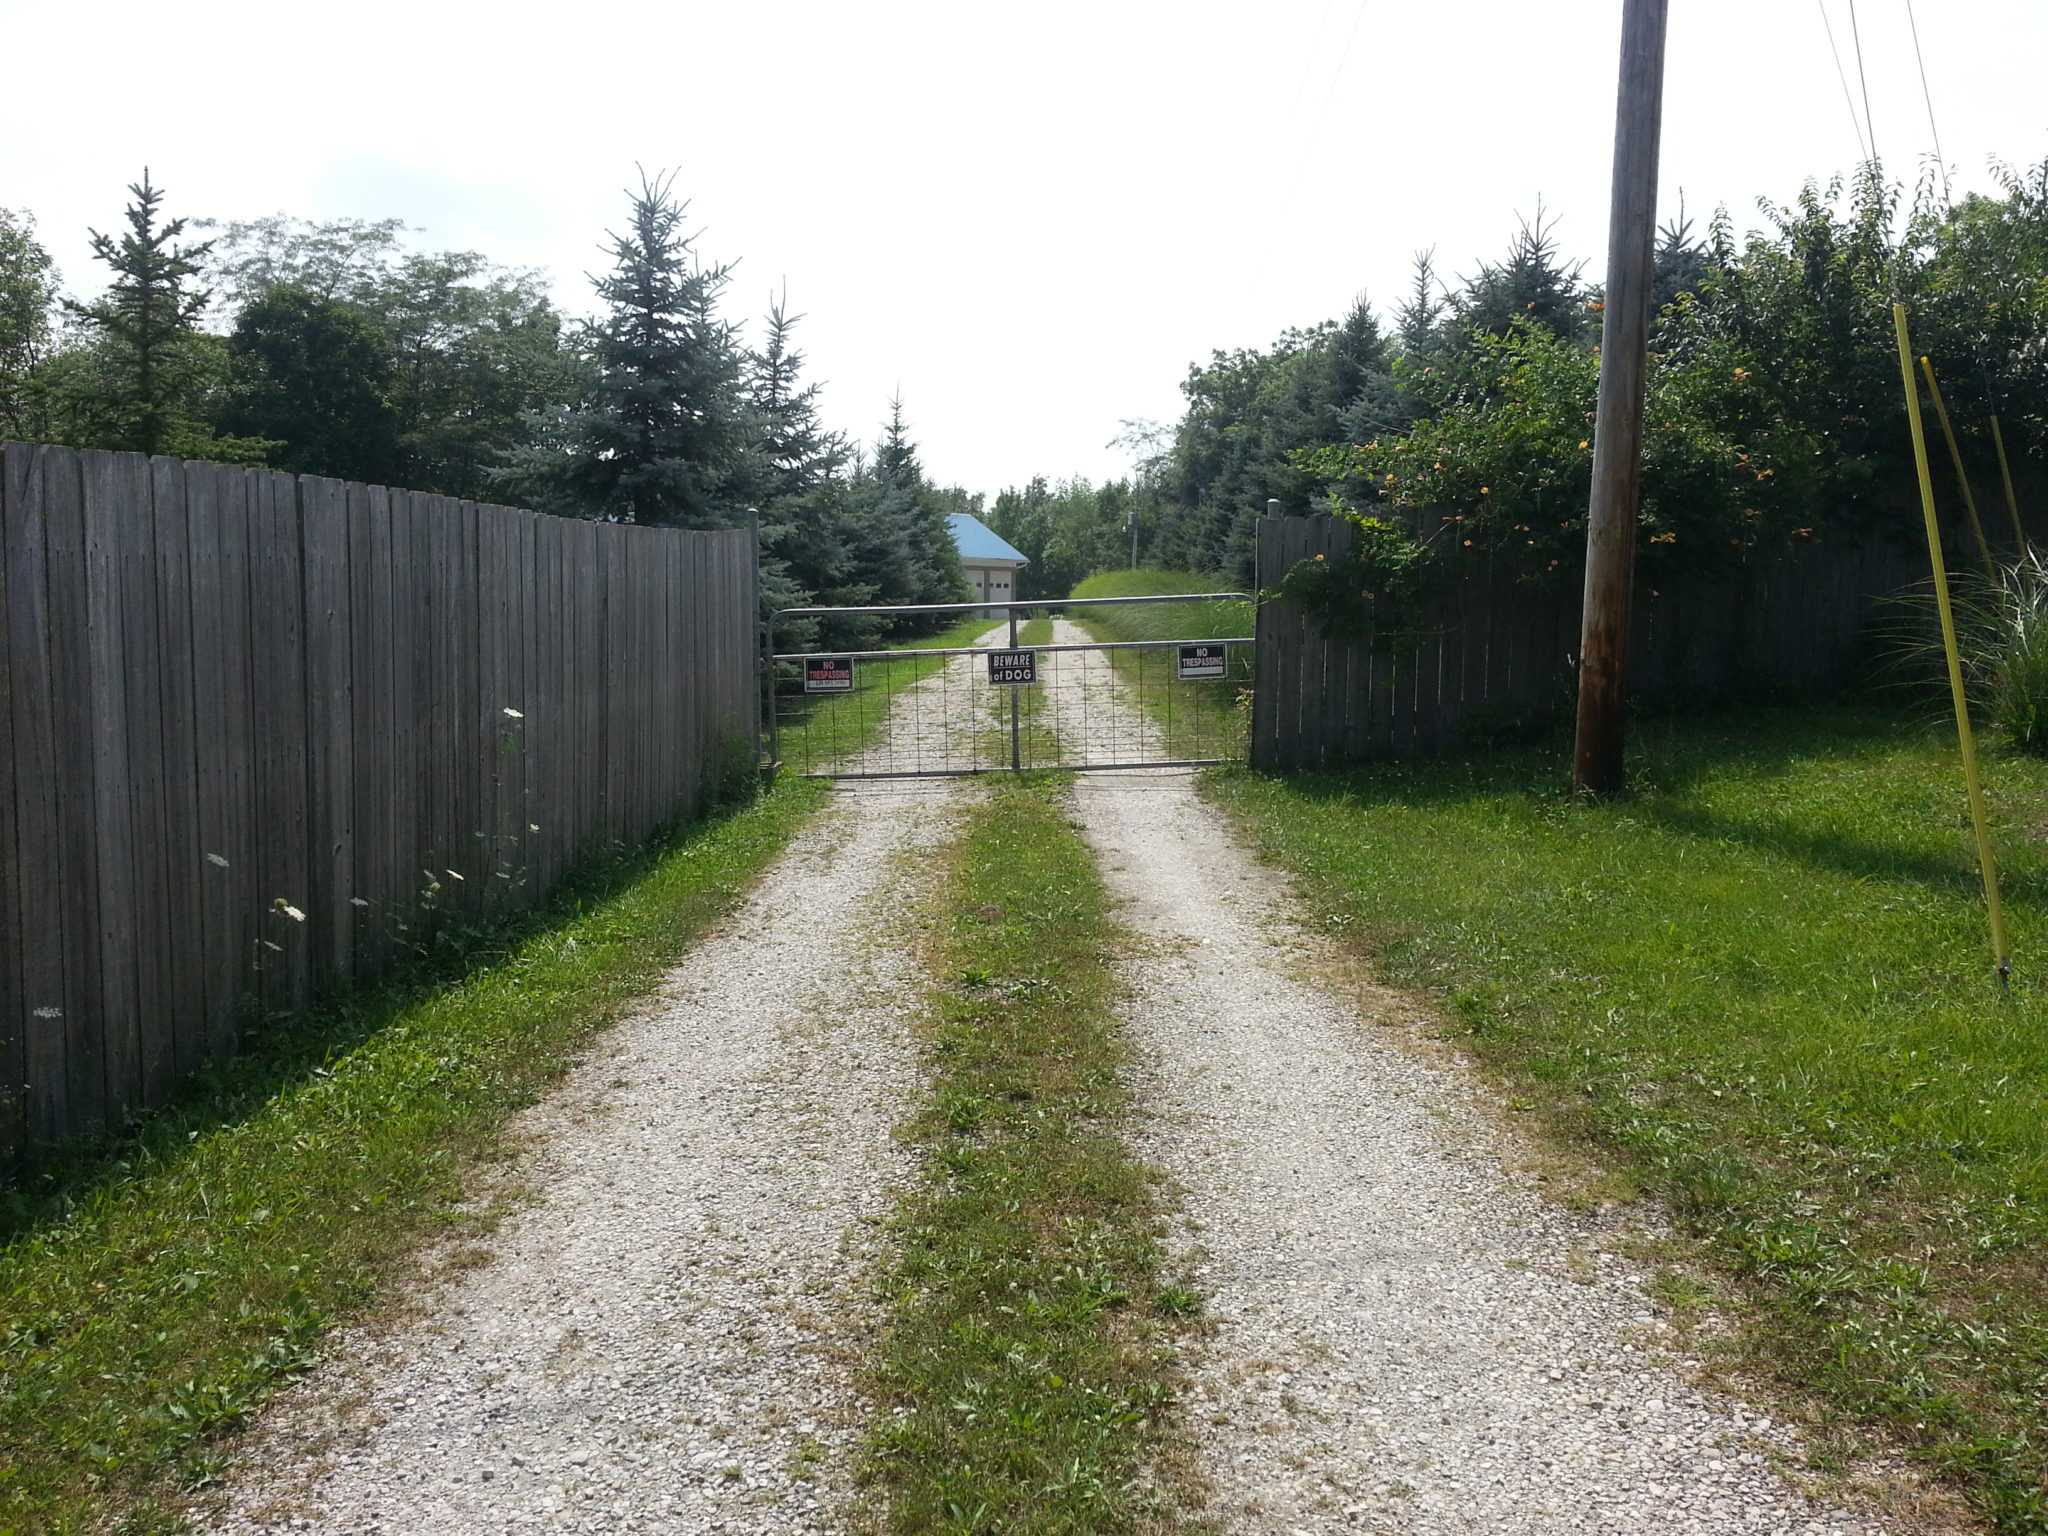 Original driveway entrance before we updated it by installing custom sliding driveway gates.